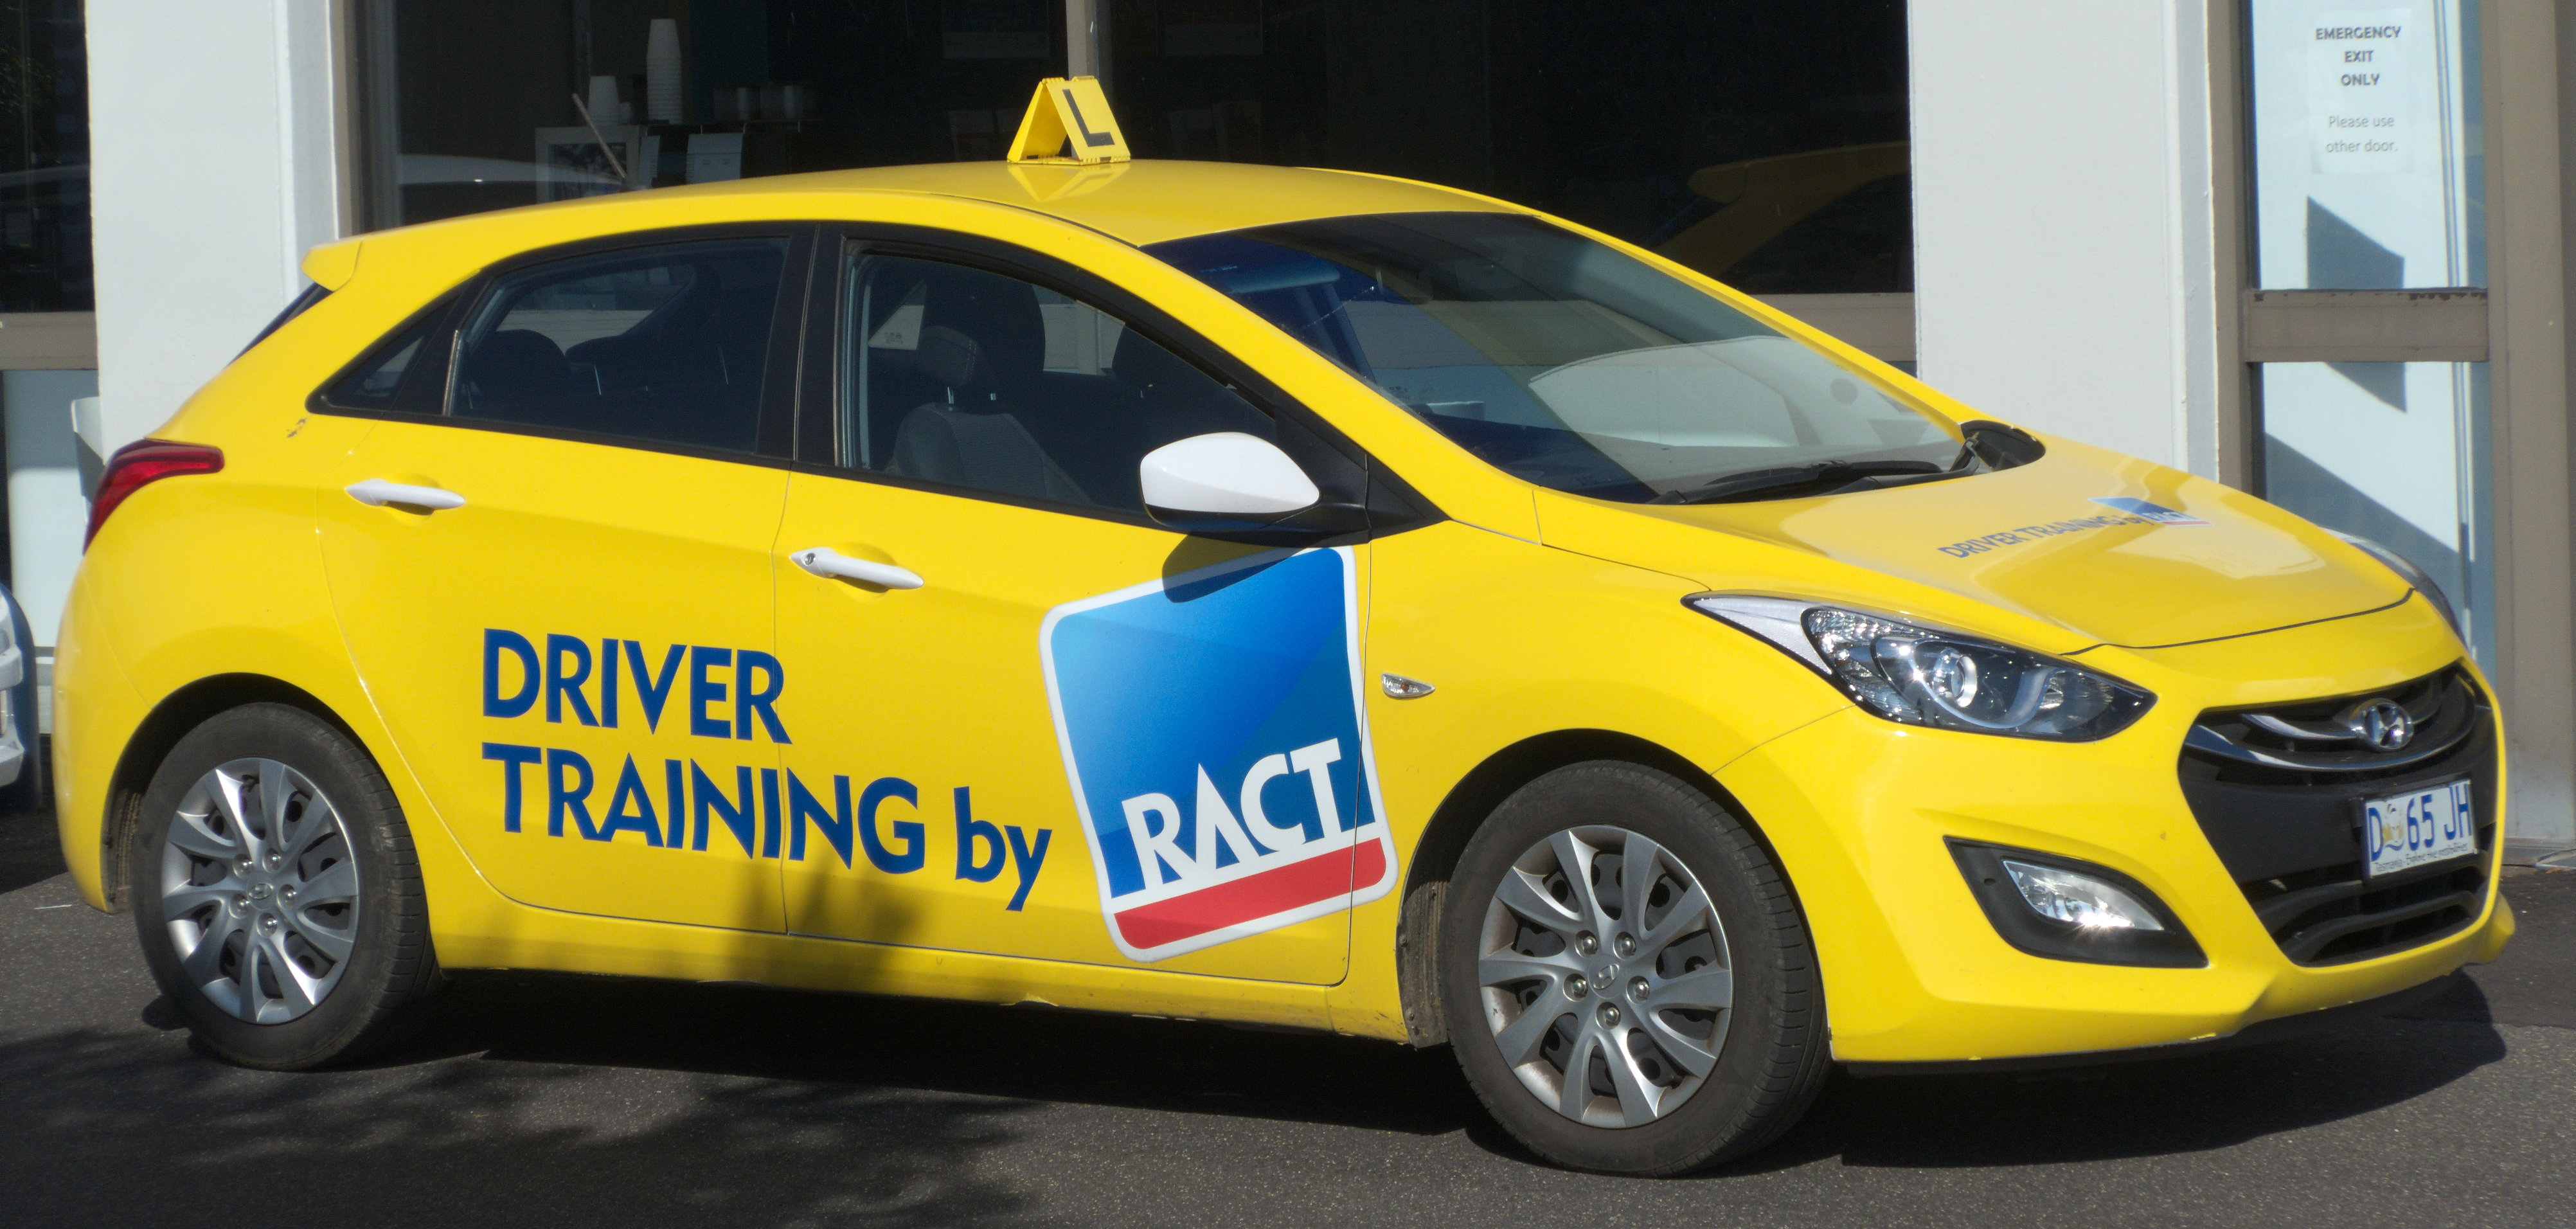 Ract training car burnie 20150216 003